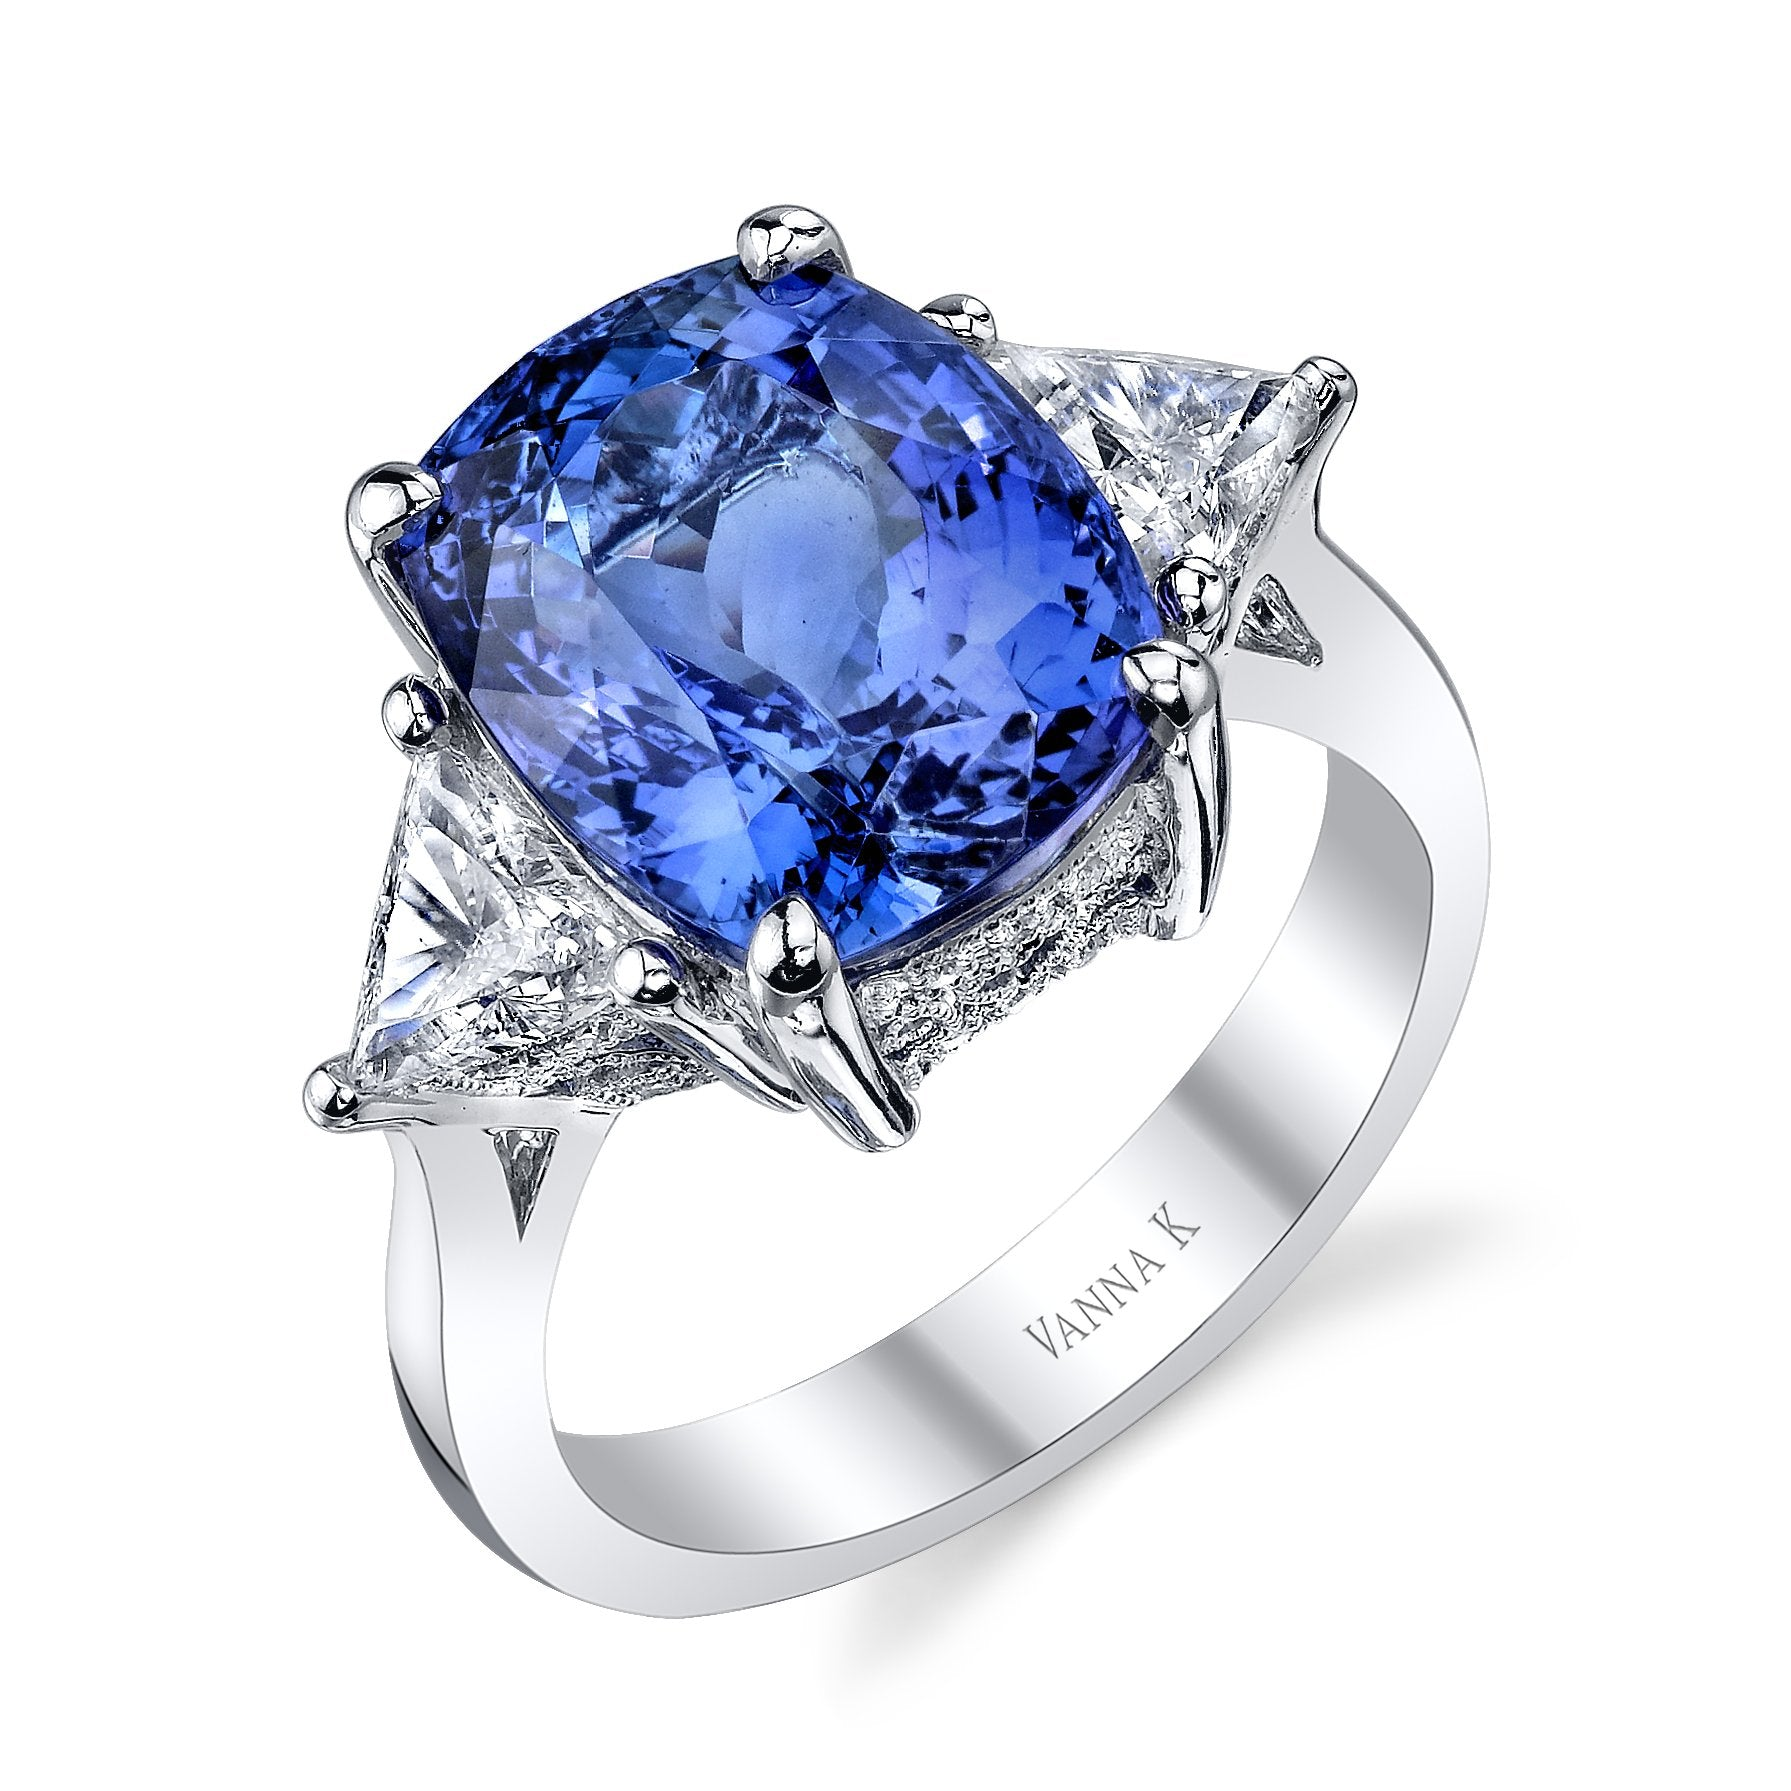 18K WHITE GOLD TANZANITE ENGAGEMENT RING